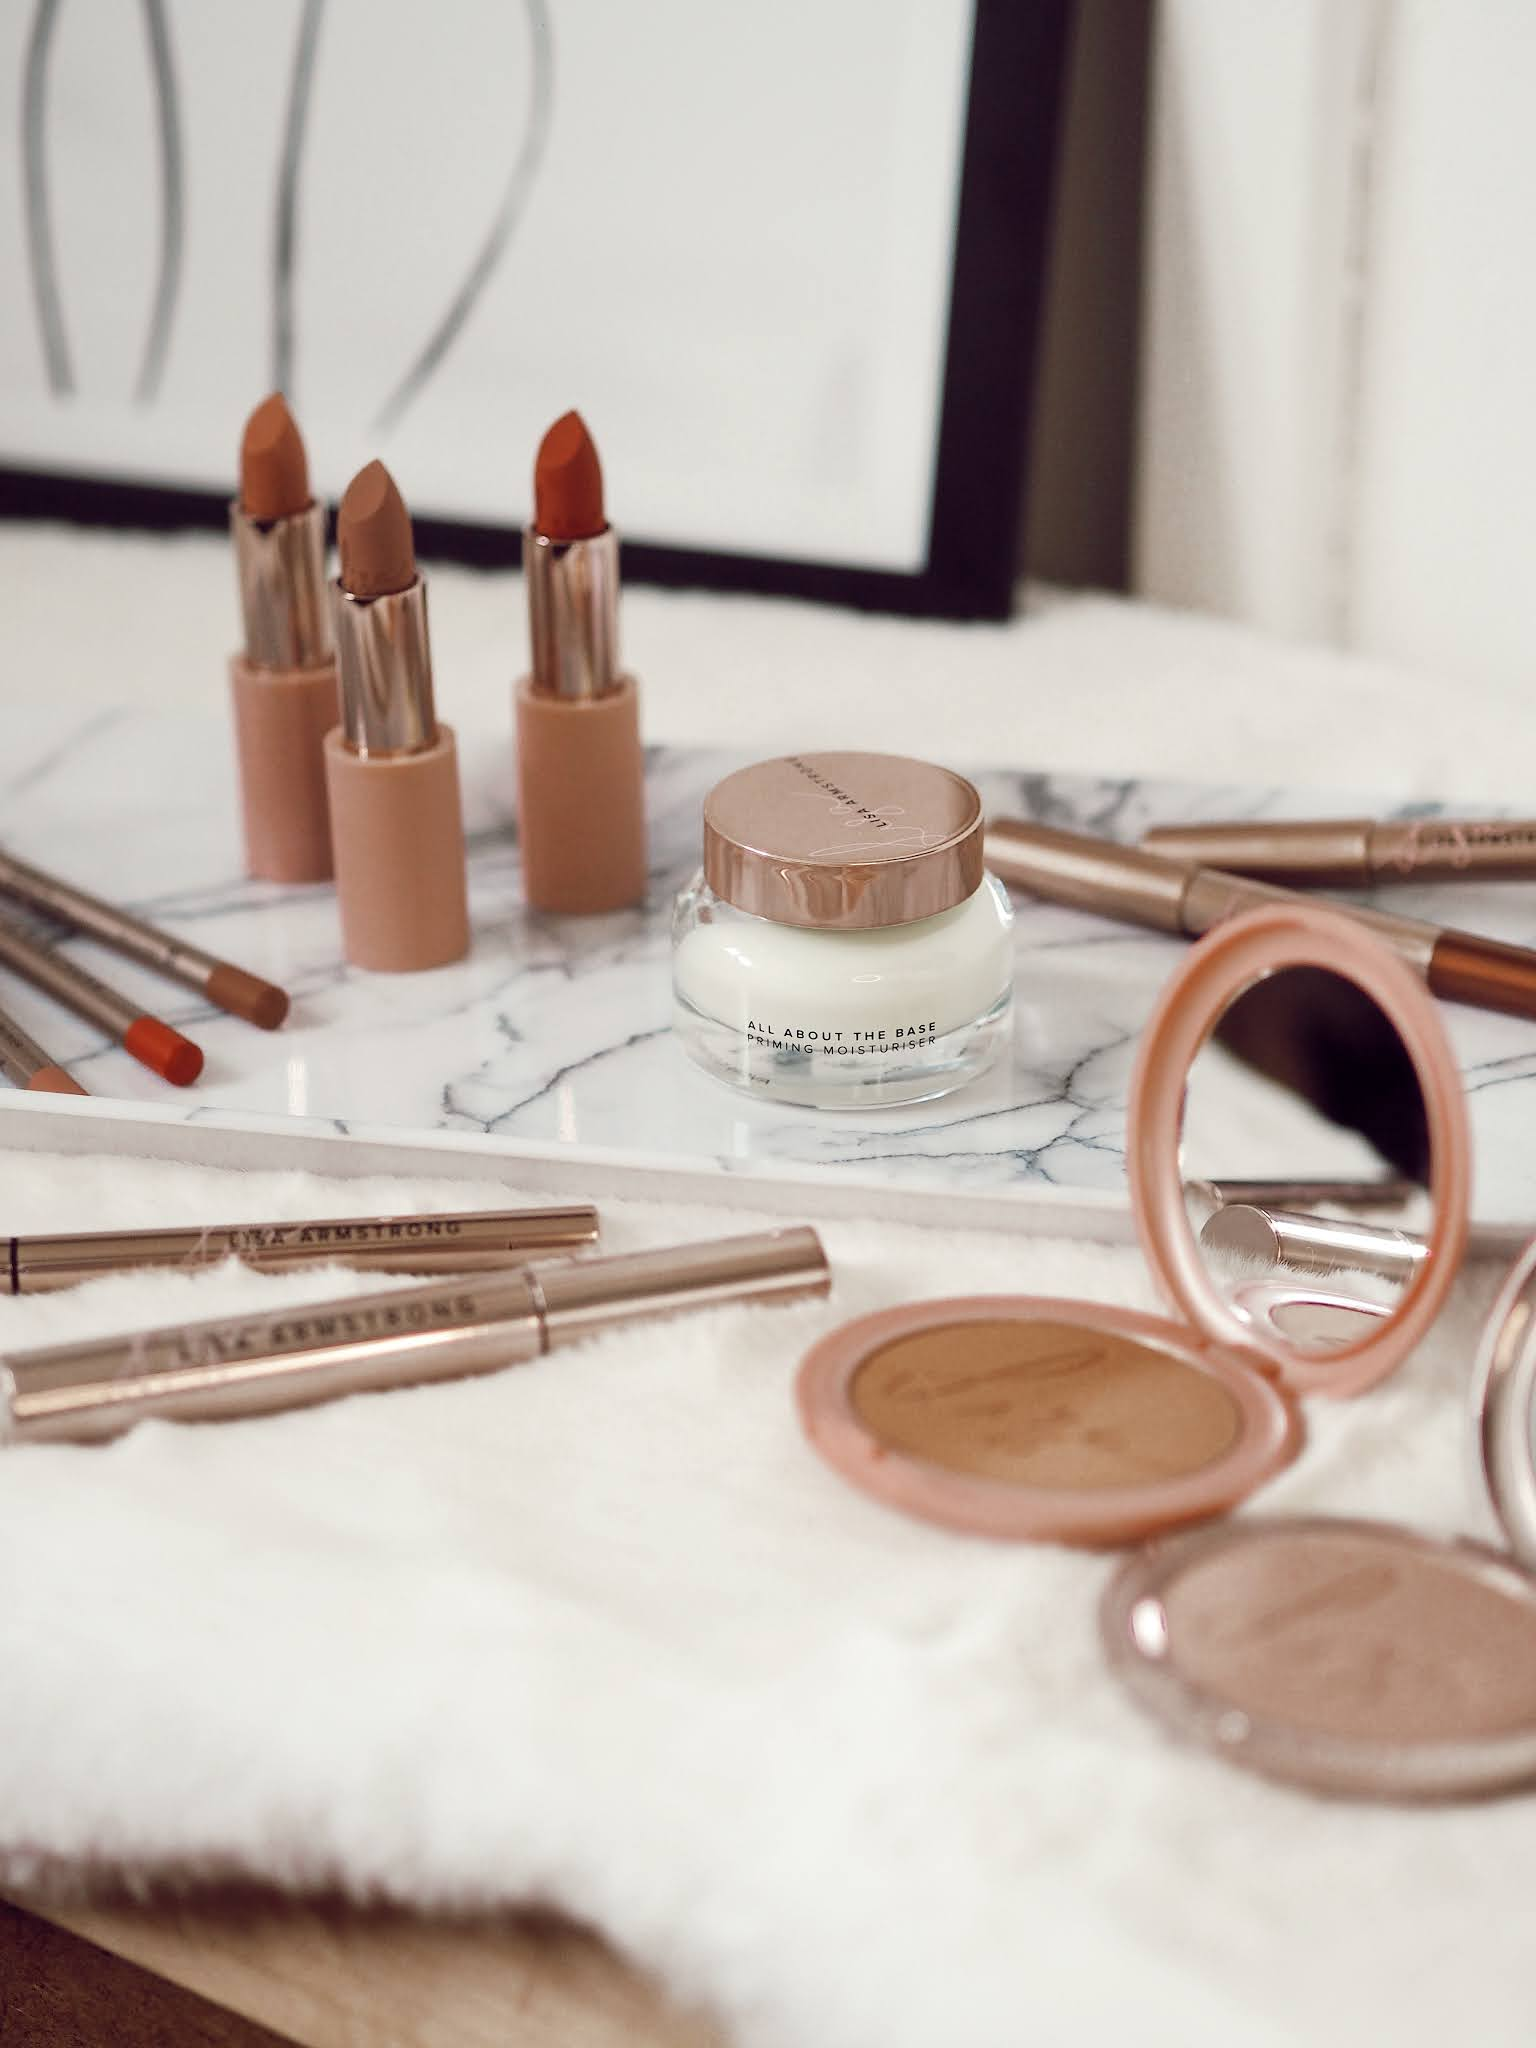 Makeup products from the Lisa Armstrong x Avon Collection